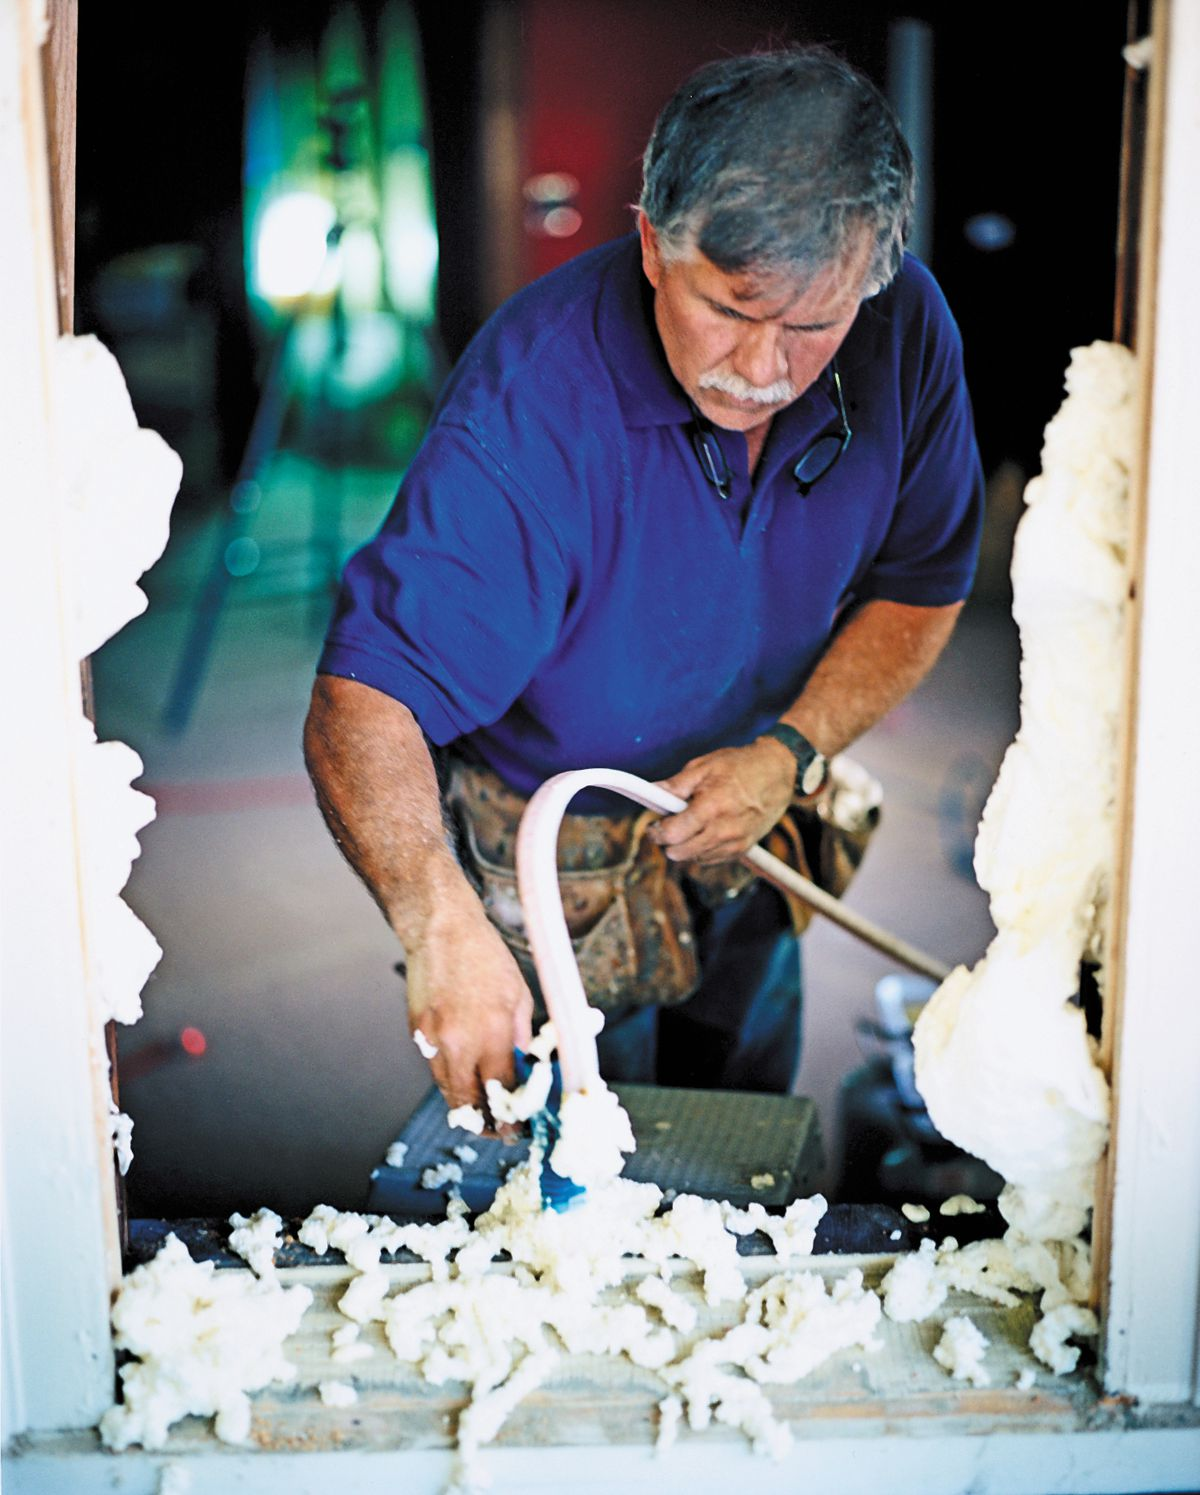 Man Sprays Foam Into Drilled Holes For Window Replacement Preparation